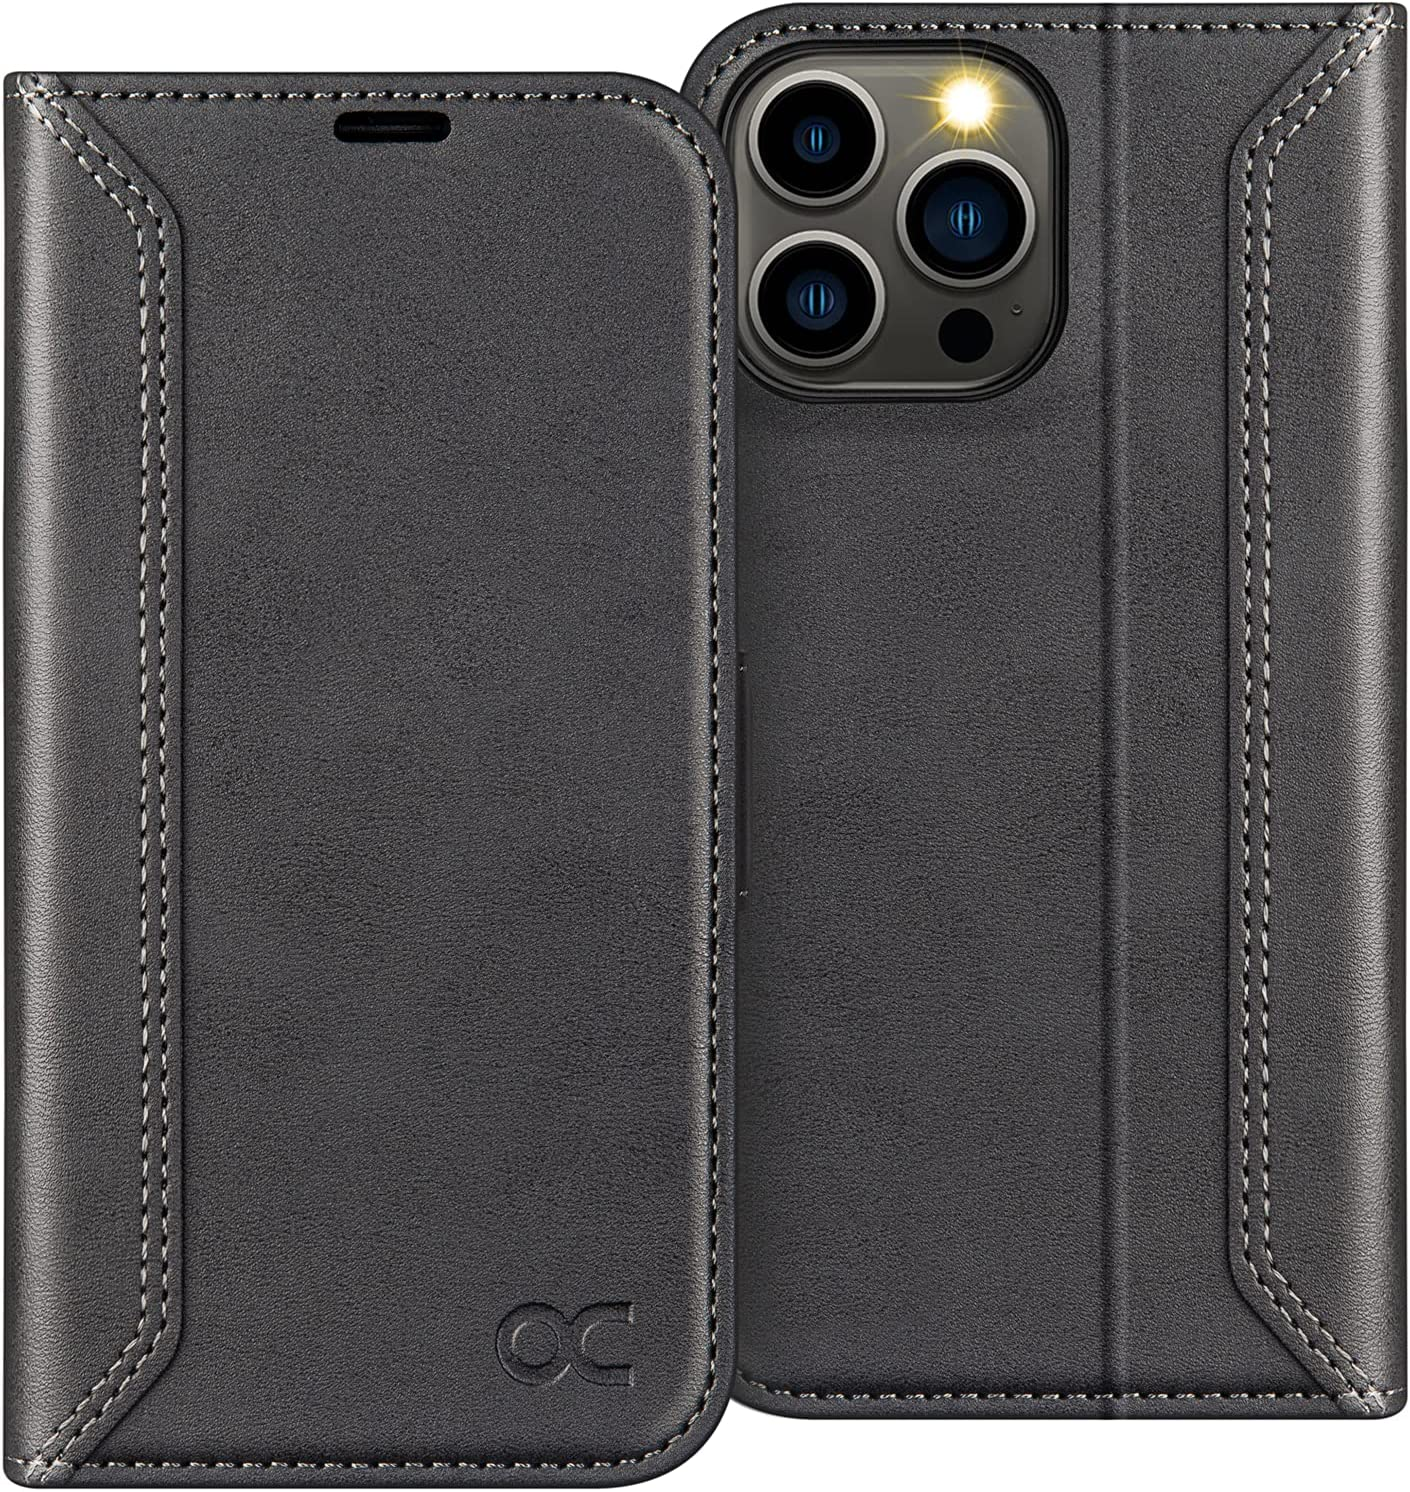 OCASE Retro Series Compatible with iPhone 13 Pro Max Wallet Case with Card Holders [RFID Blocking][TPU Inner Shell ][Kickstand] Shockproof PU Leather Flip Folio Phone Cover 6.7 inch 2021 (Black)